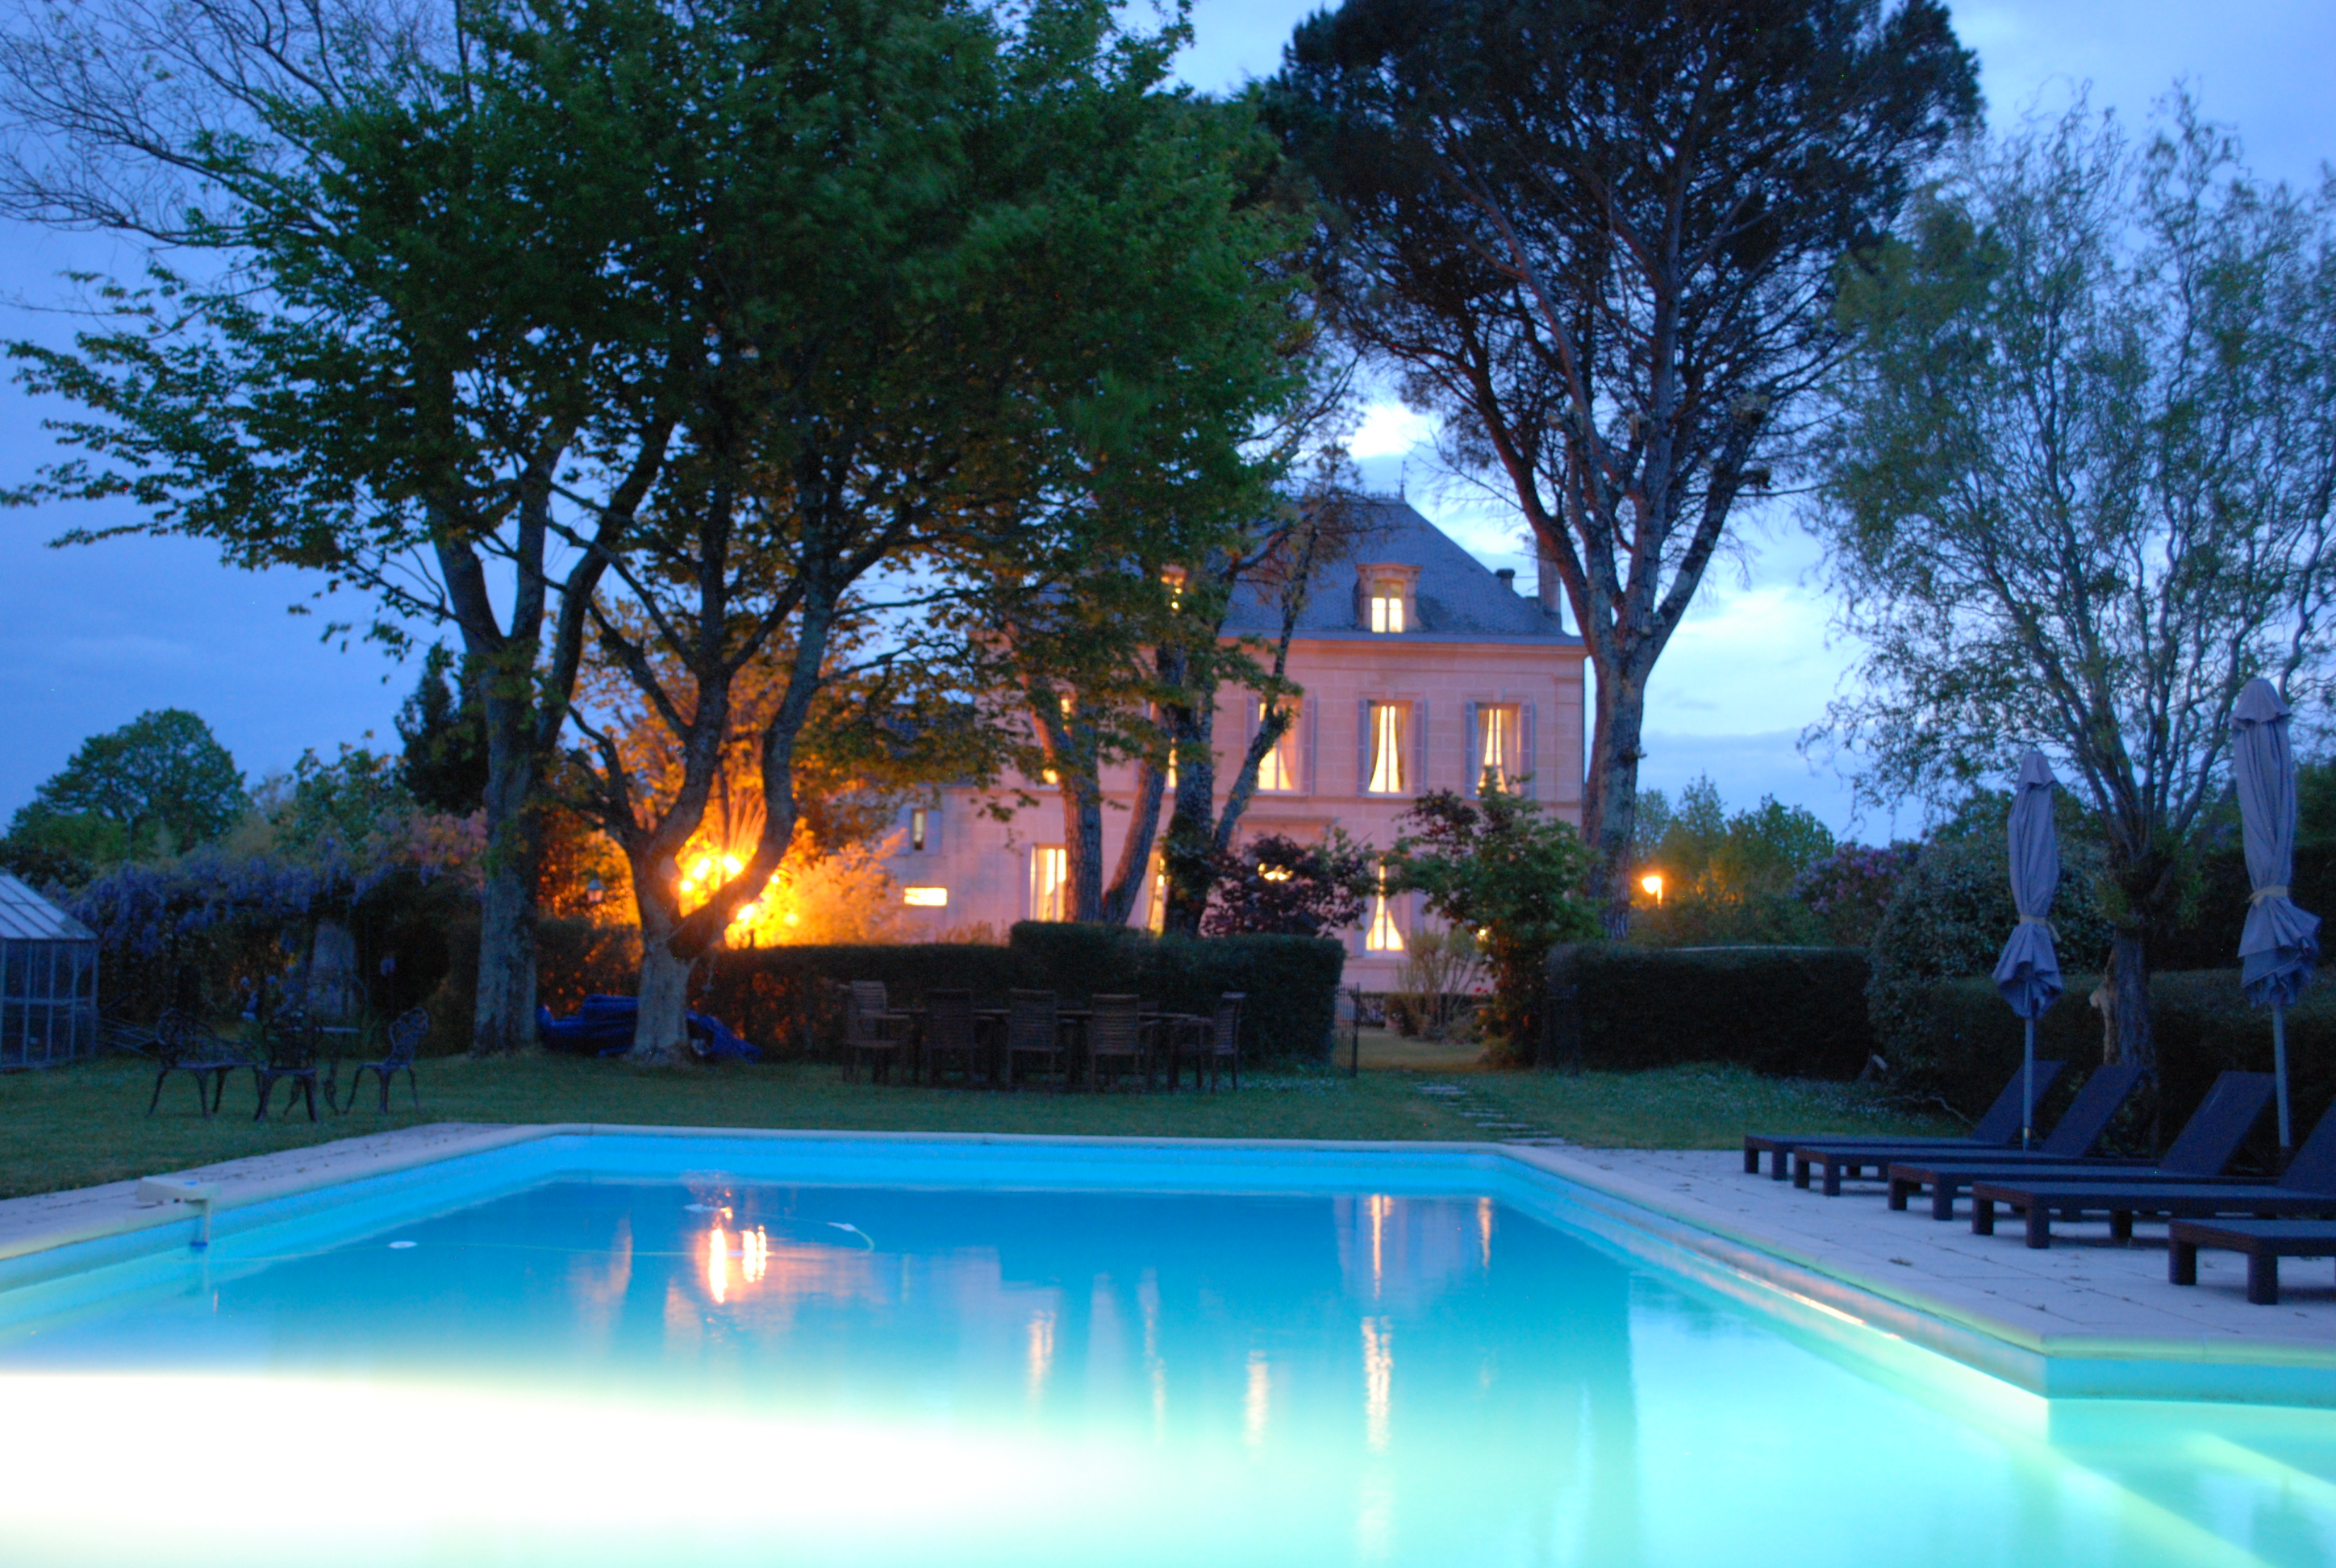 Pool, garden and house in the evening